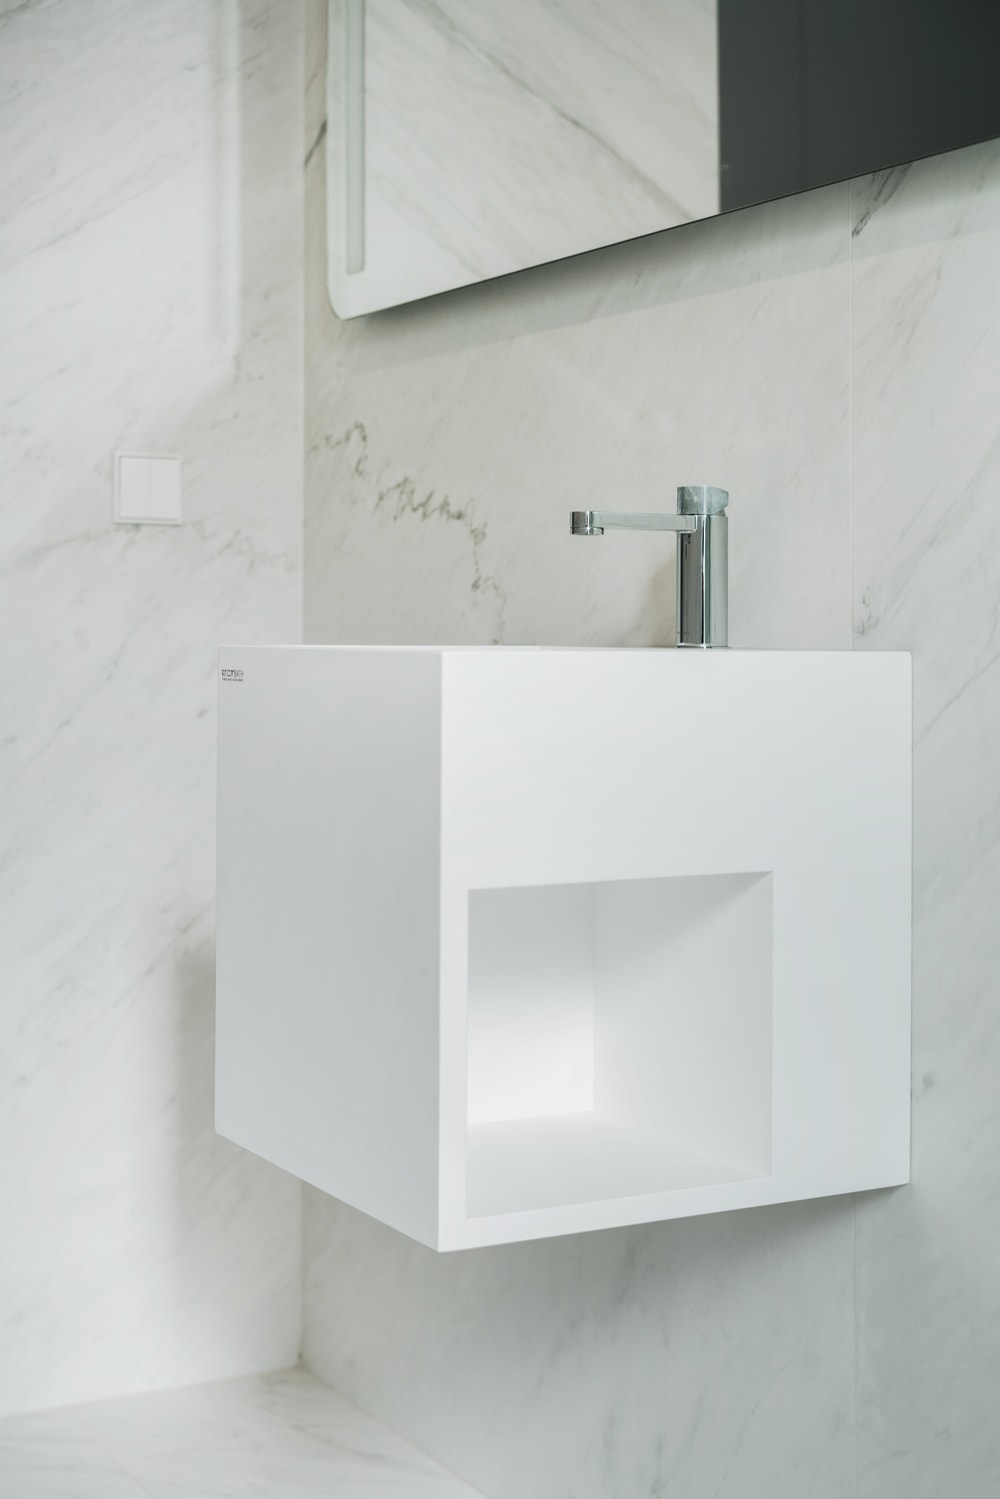 This is the other side of the white floating vanity beside the toilet. This has a built-in alcove on the side for use of those on the toilet.